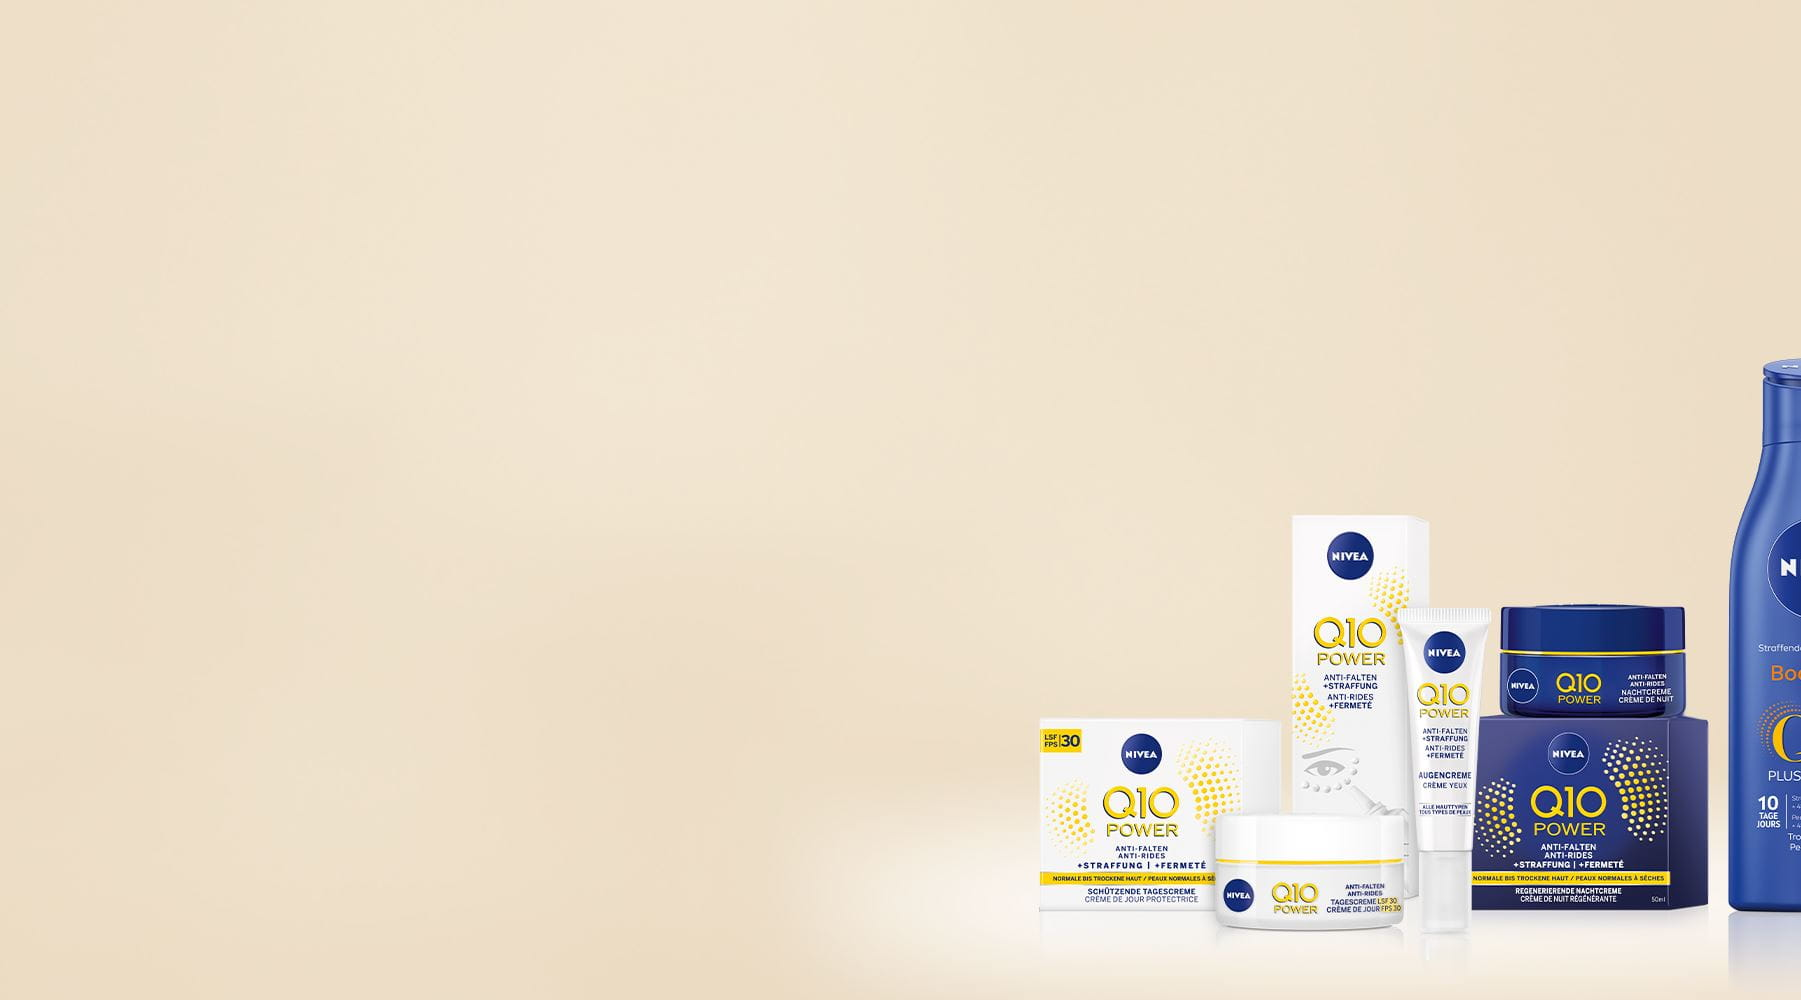 Q10 Power Body and Face Products